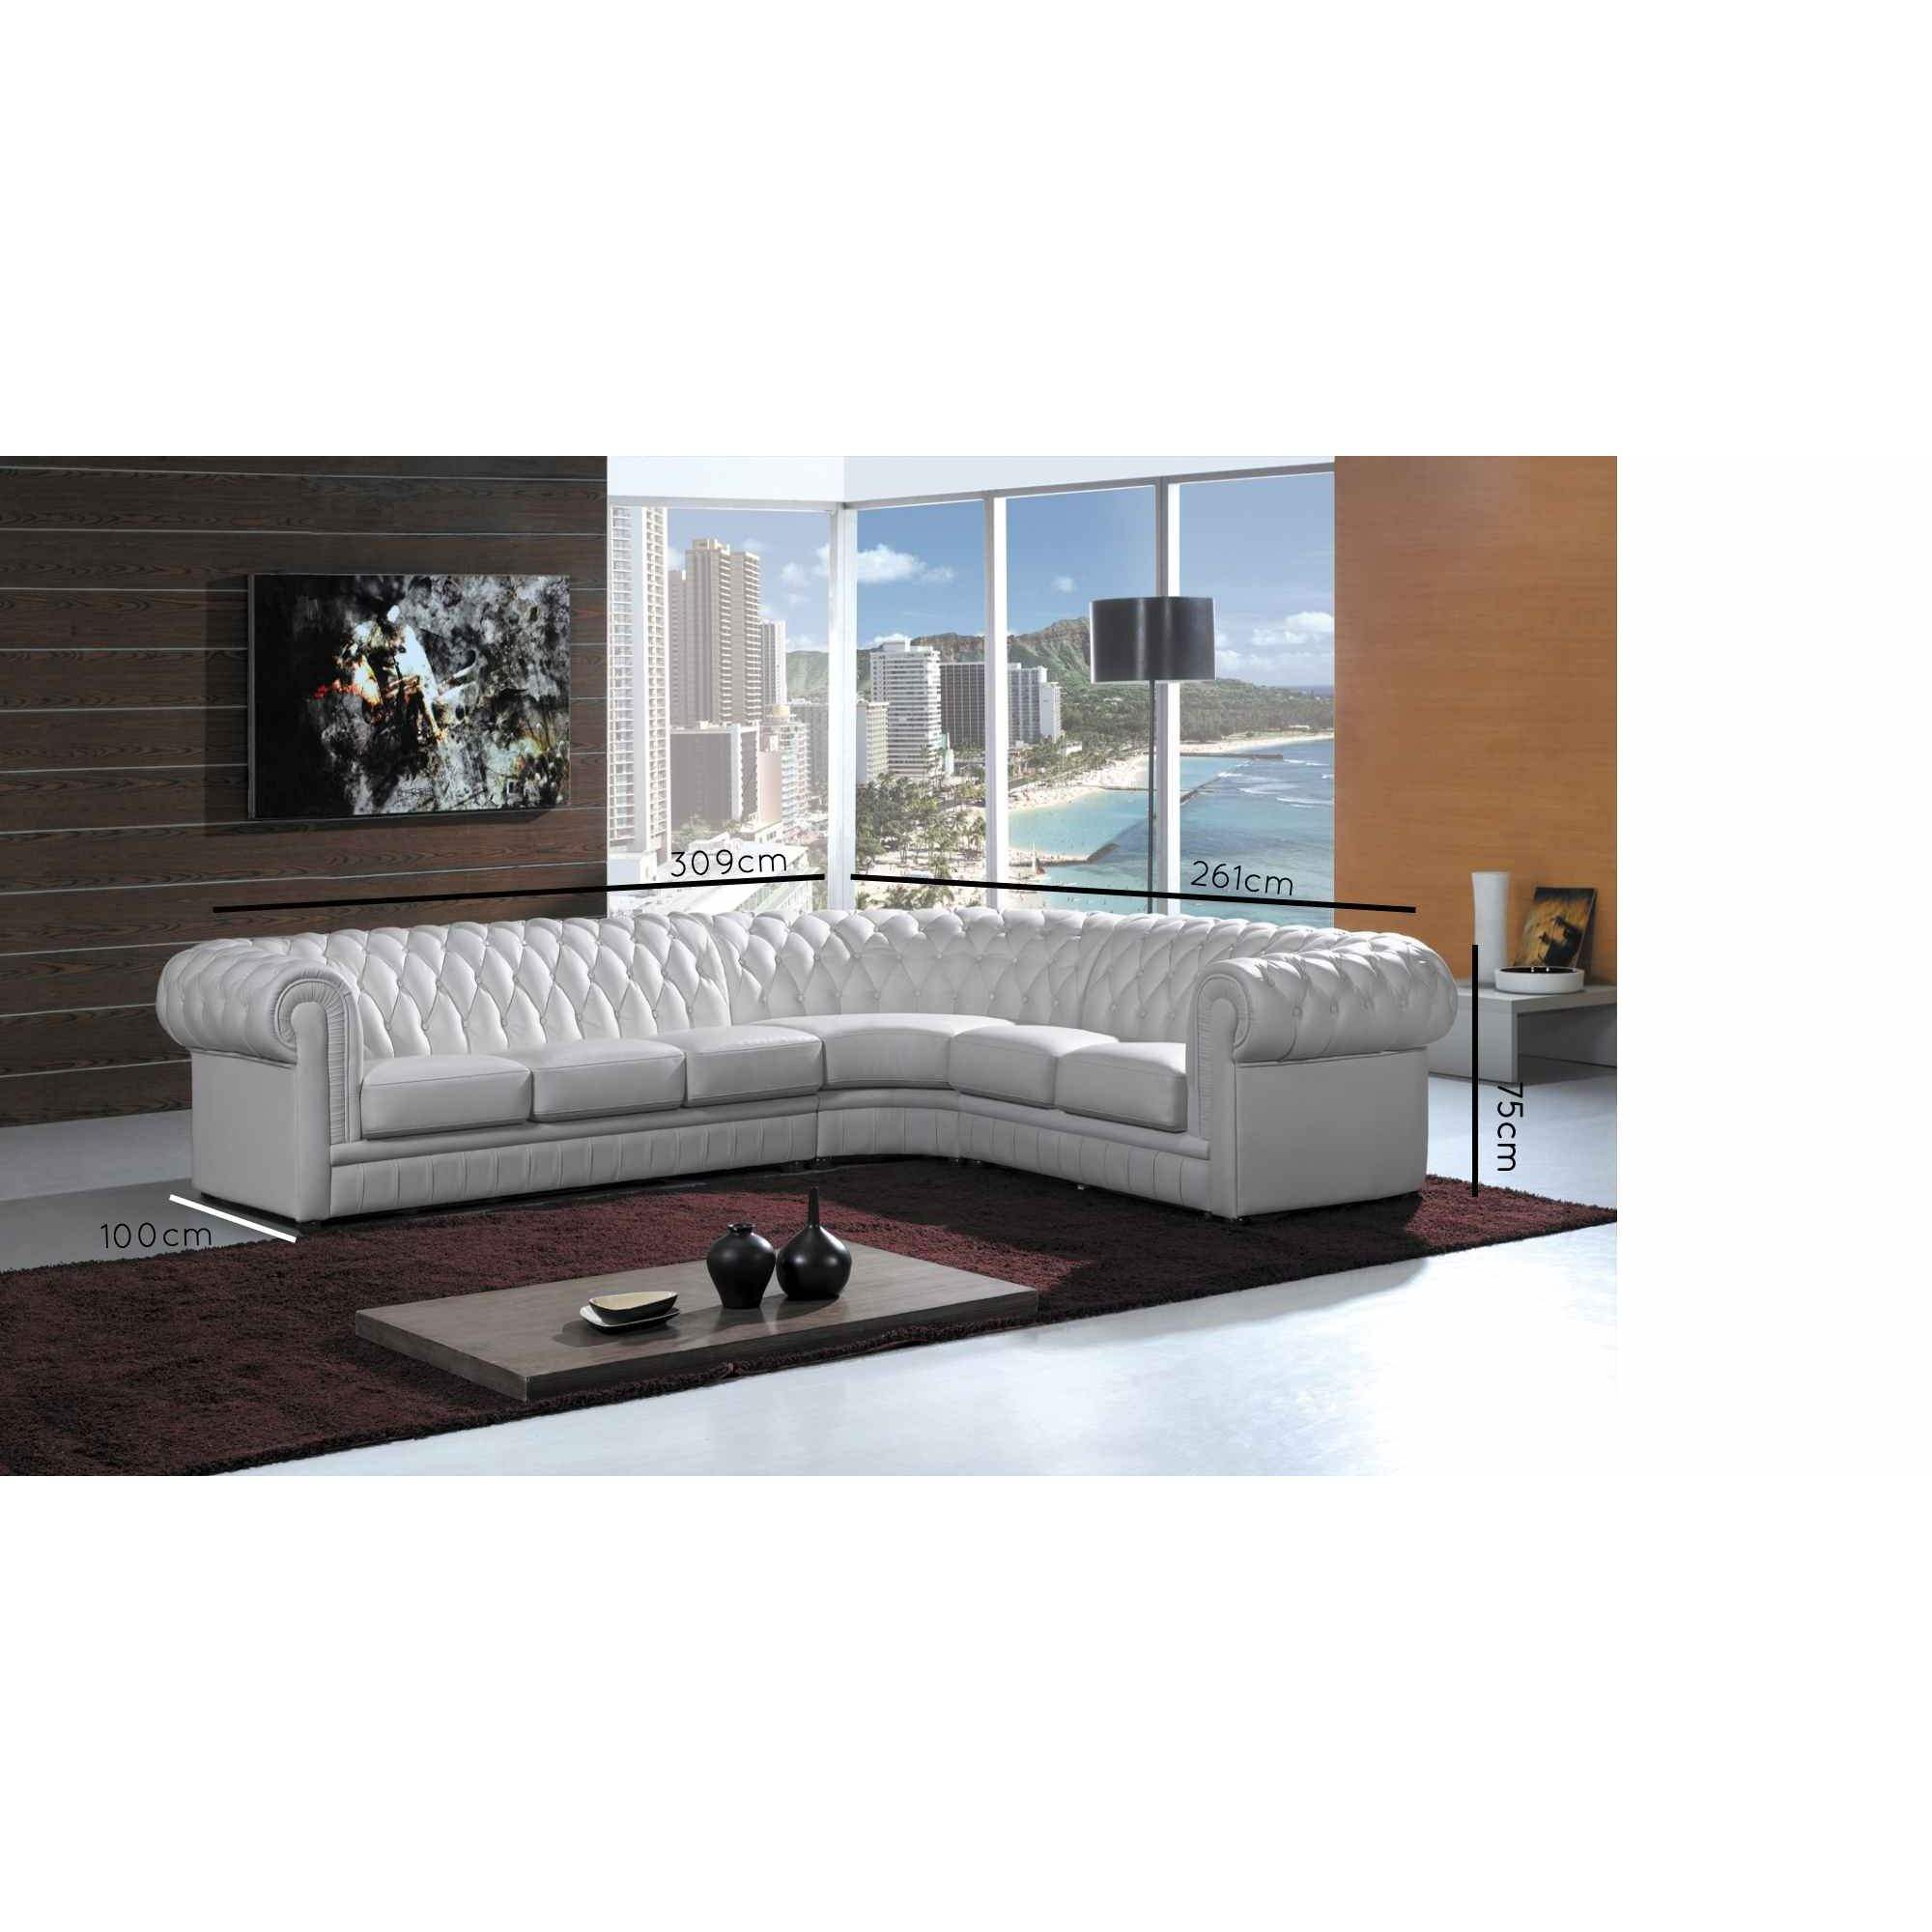 Deco in paris grand canape d angle capitonne blanc - Canape chesterfield but ...